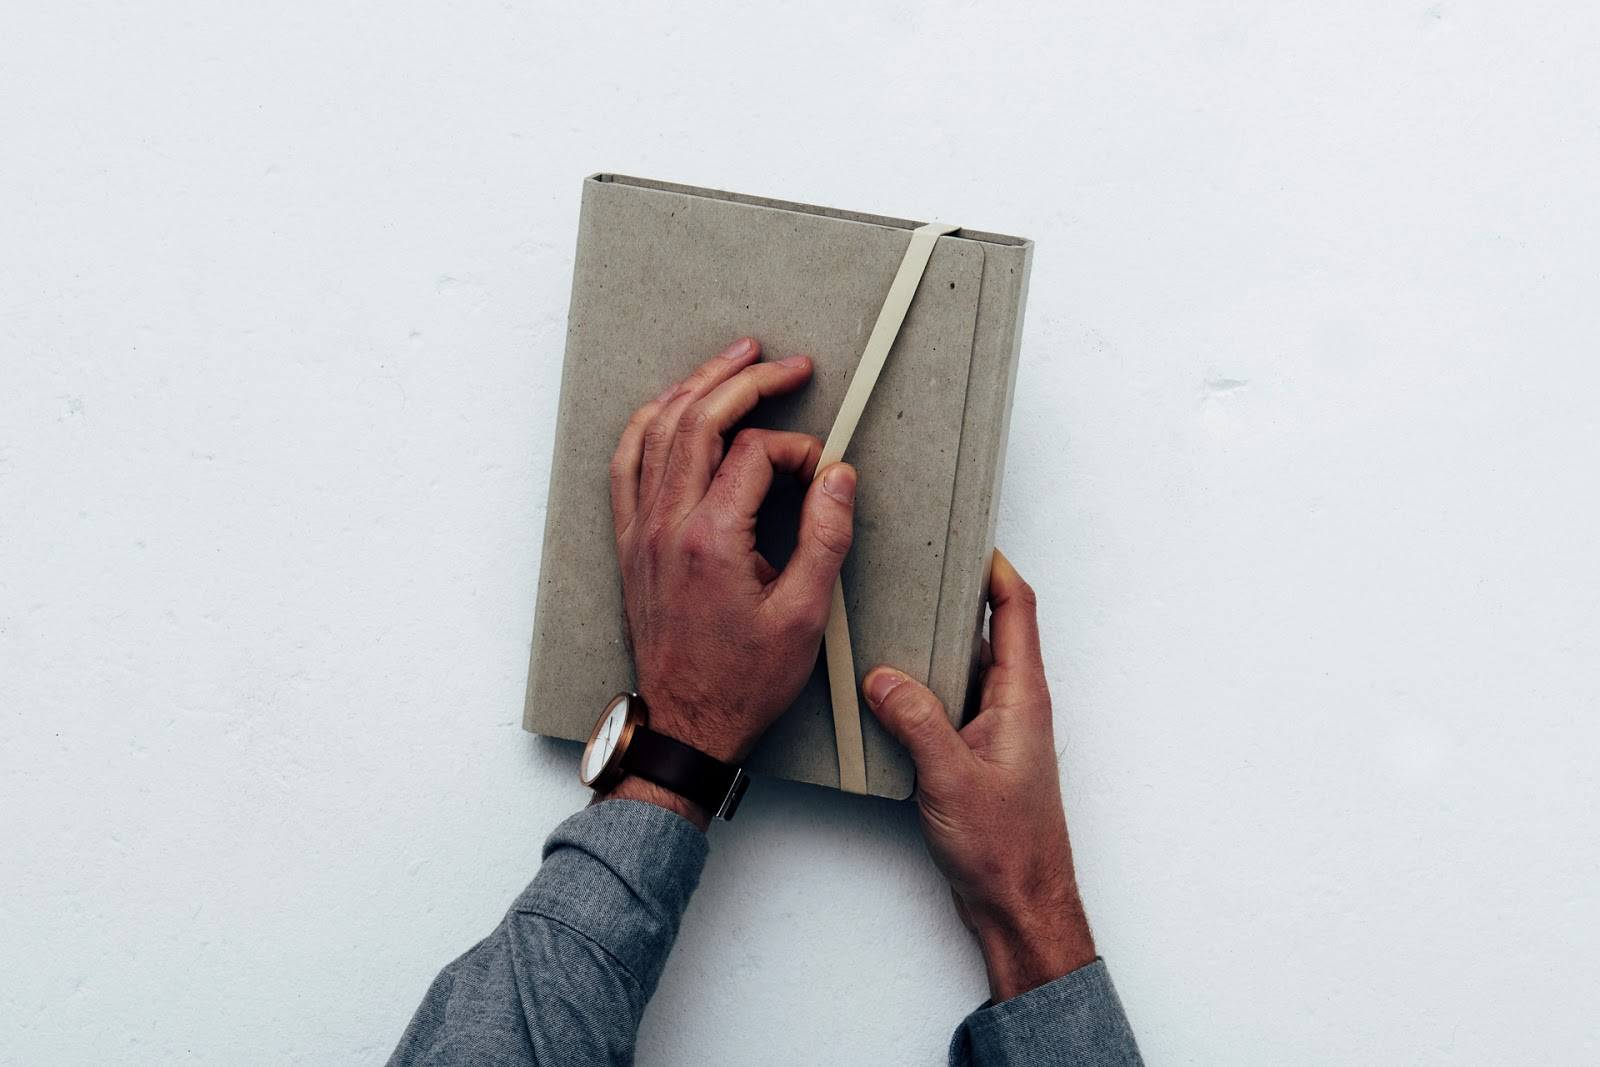 Getyourbron on supports the kickstarter campaign The Mind Journal